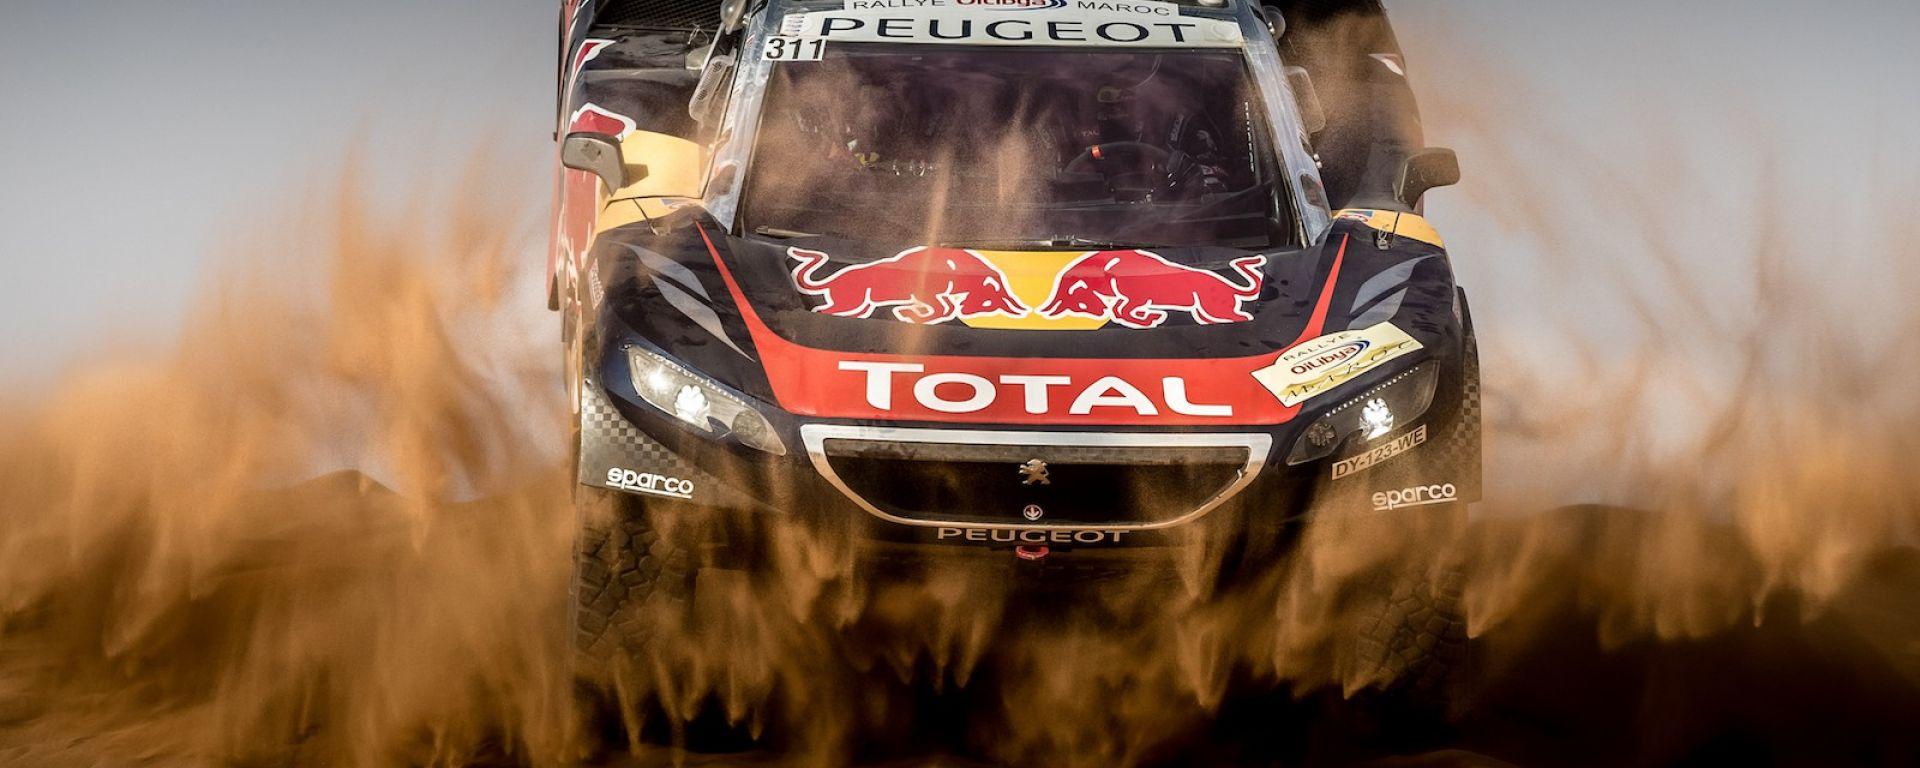 Team Peugeot Total - Rally del Marocco 2016